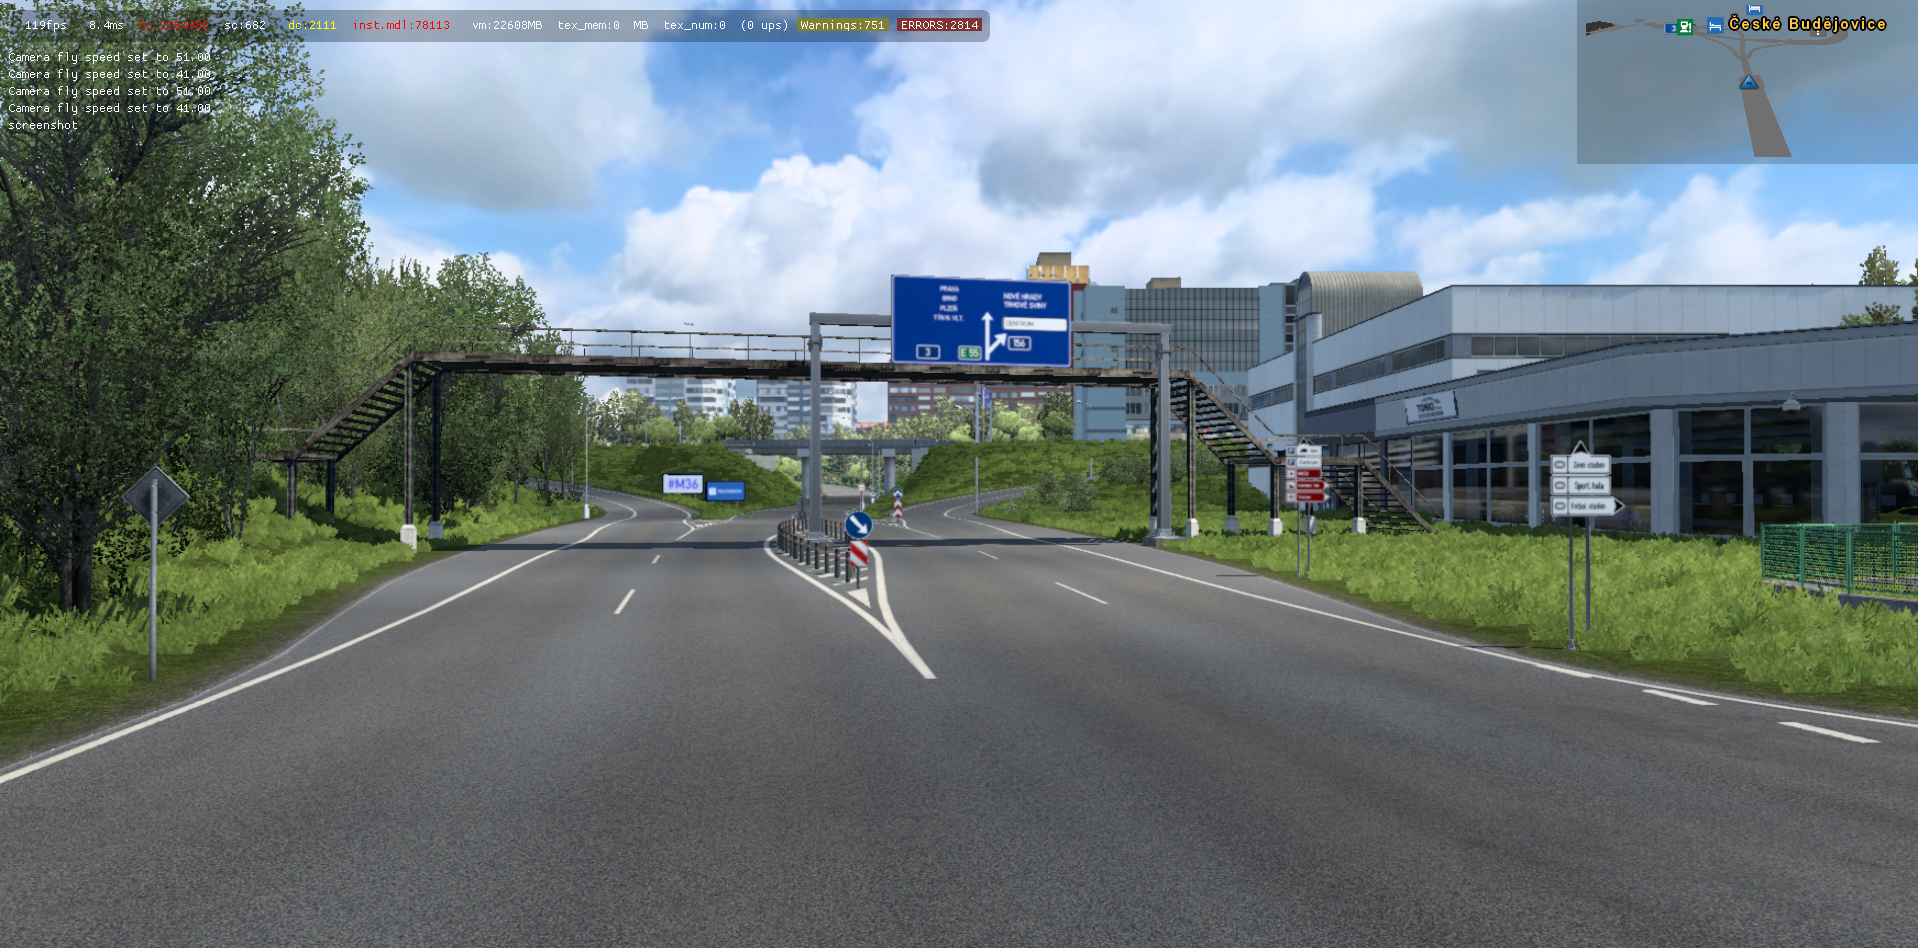 ets2_20210821_215149_00.png